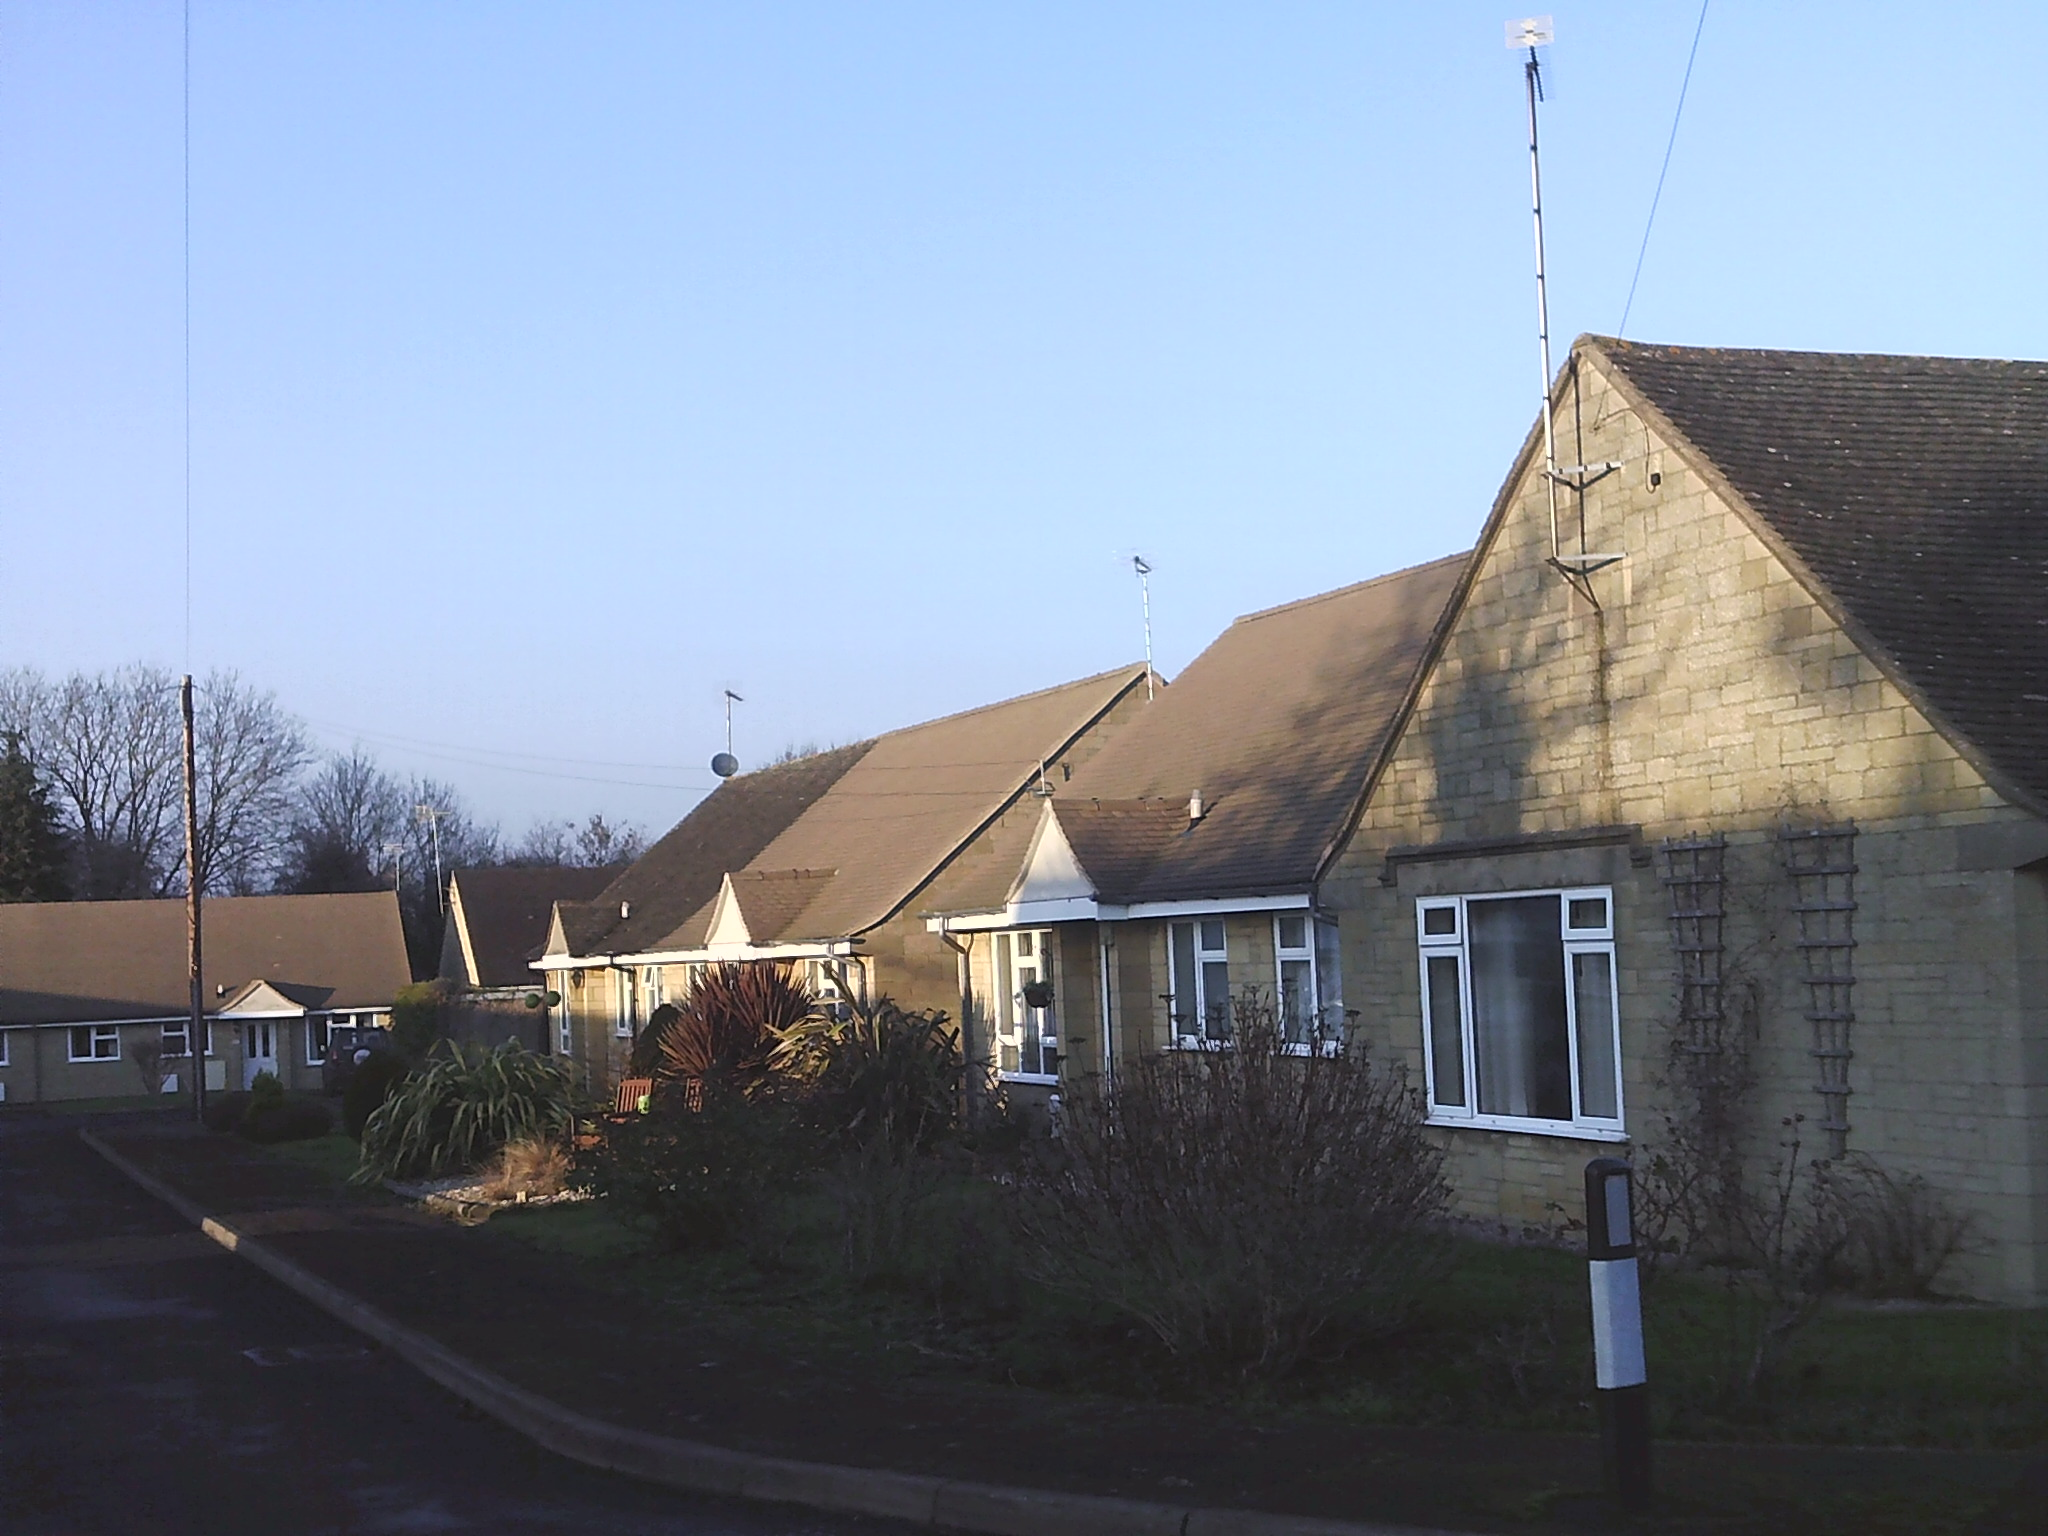 Houses in Timms Green Willersey